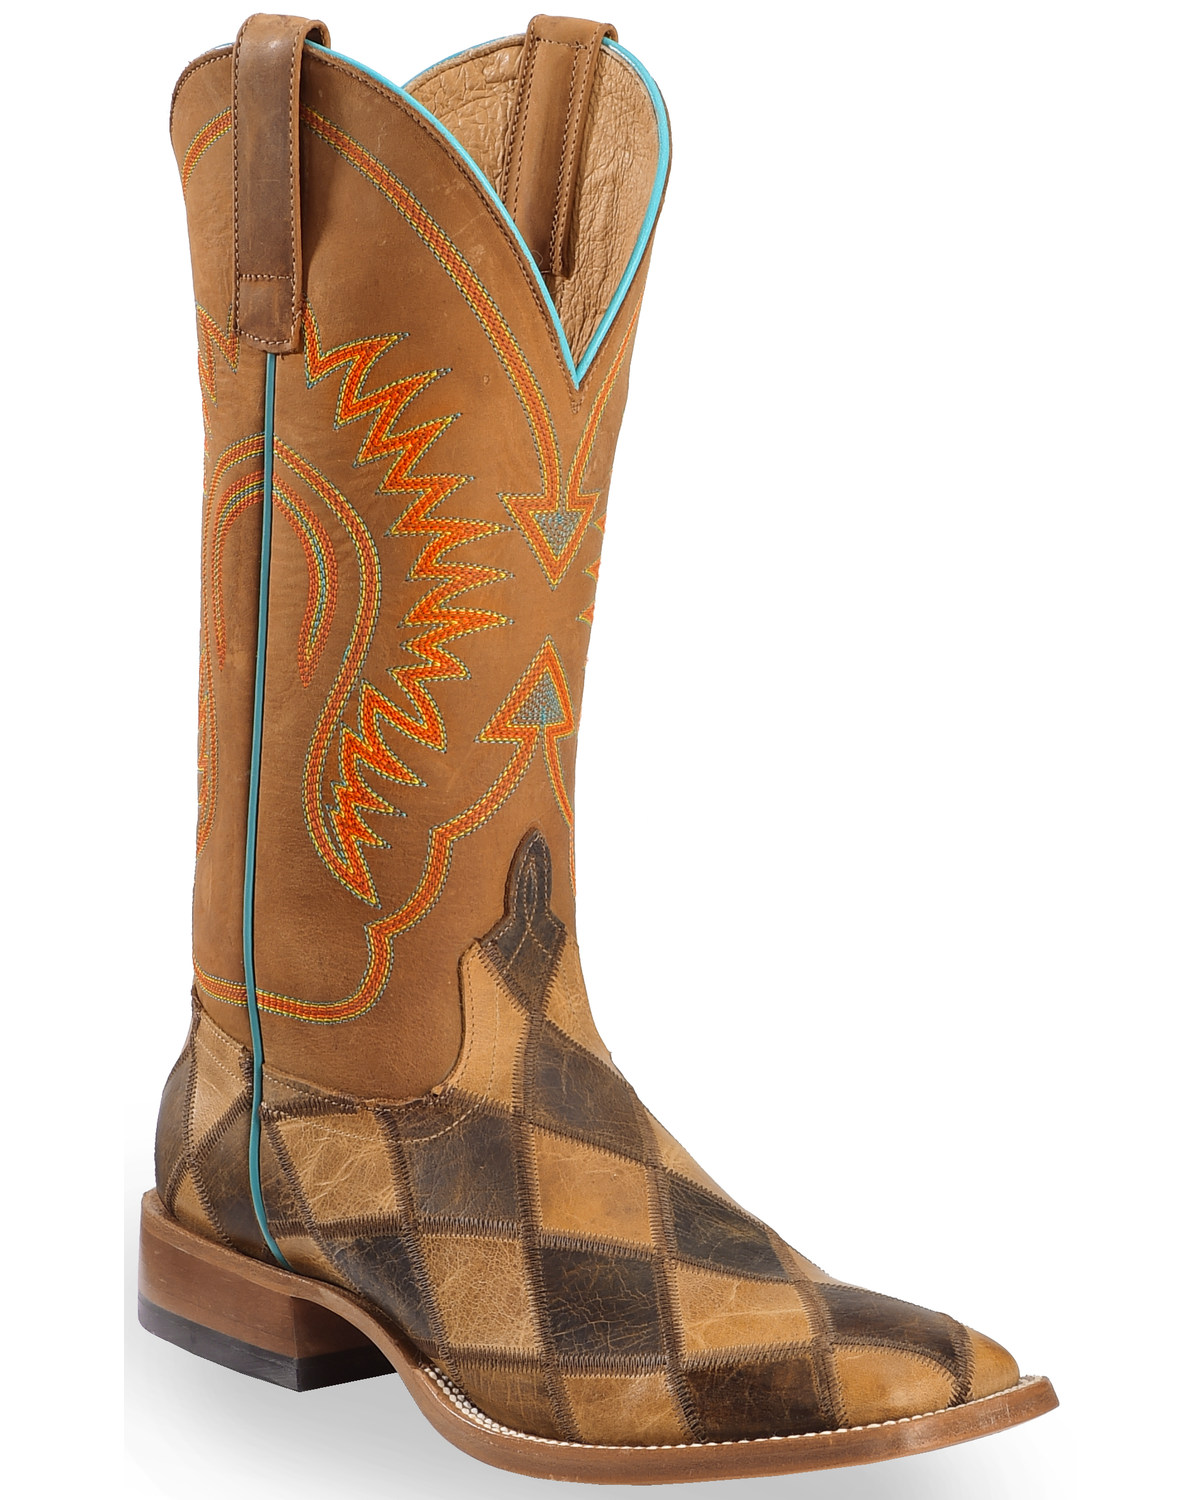 87606d7e074 Anderson Bean Vs Horsepower Boots - Image Collections Boot